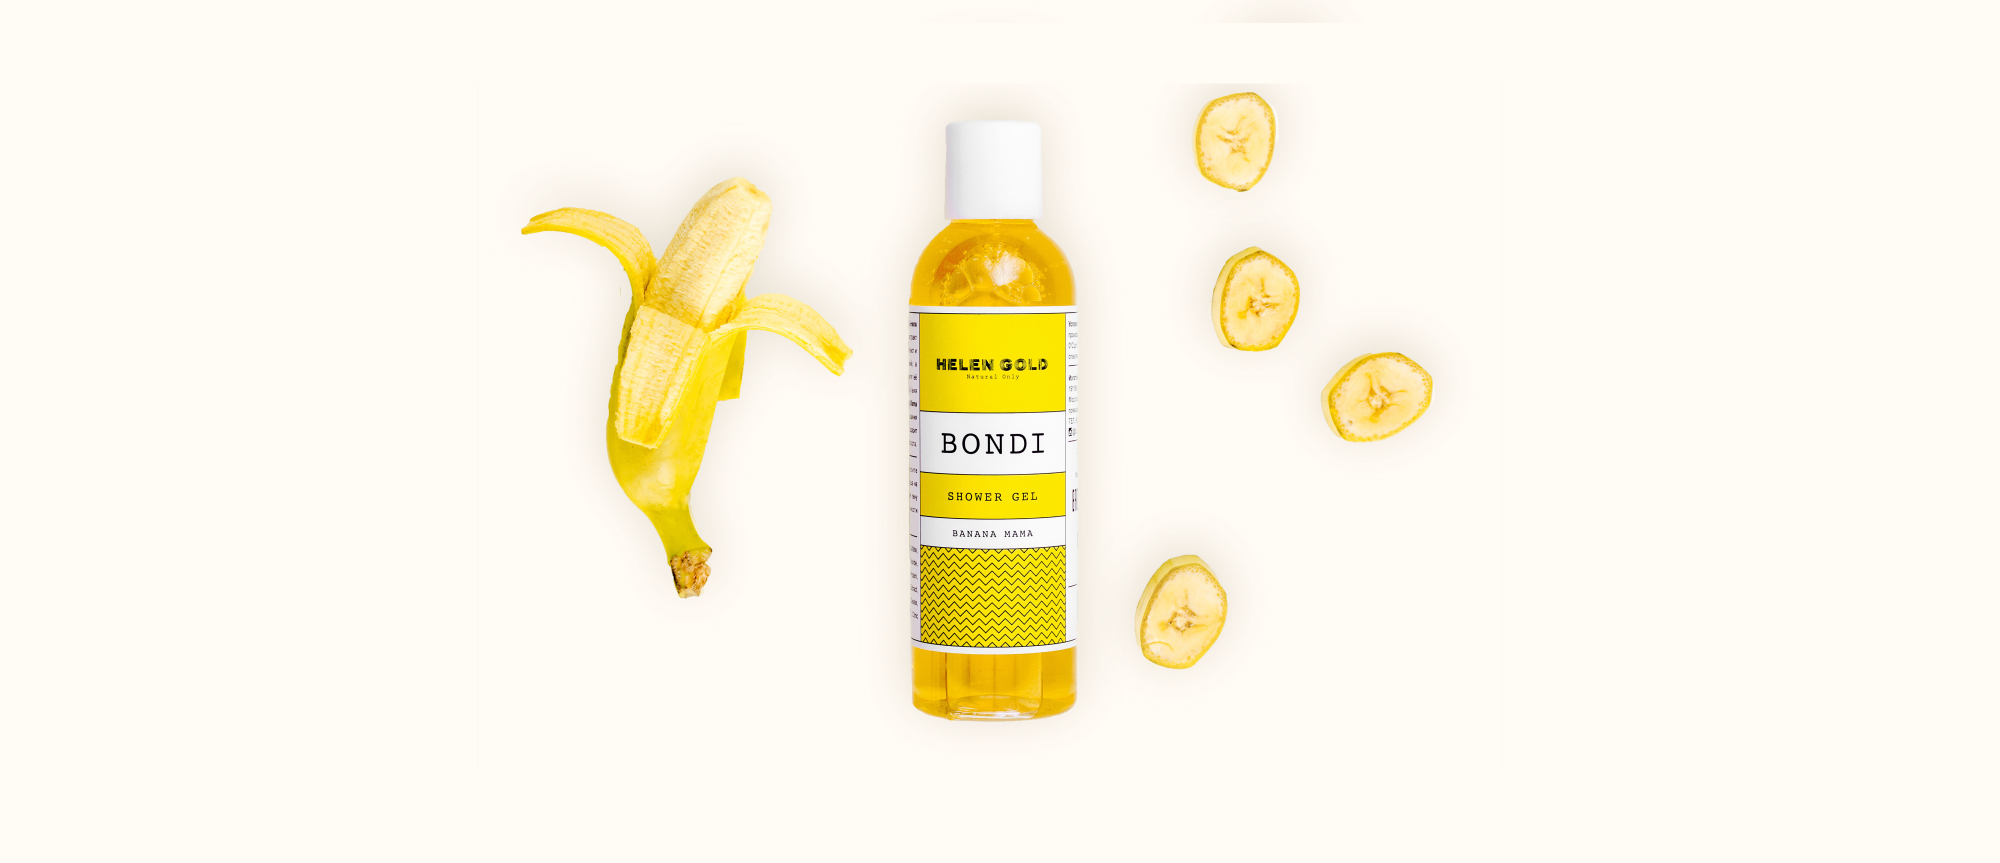 Средства для ванн и душа Banana Mama Shower Gel серии Bondi от Helen Gold, аромат - банан, 200 г